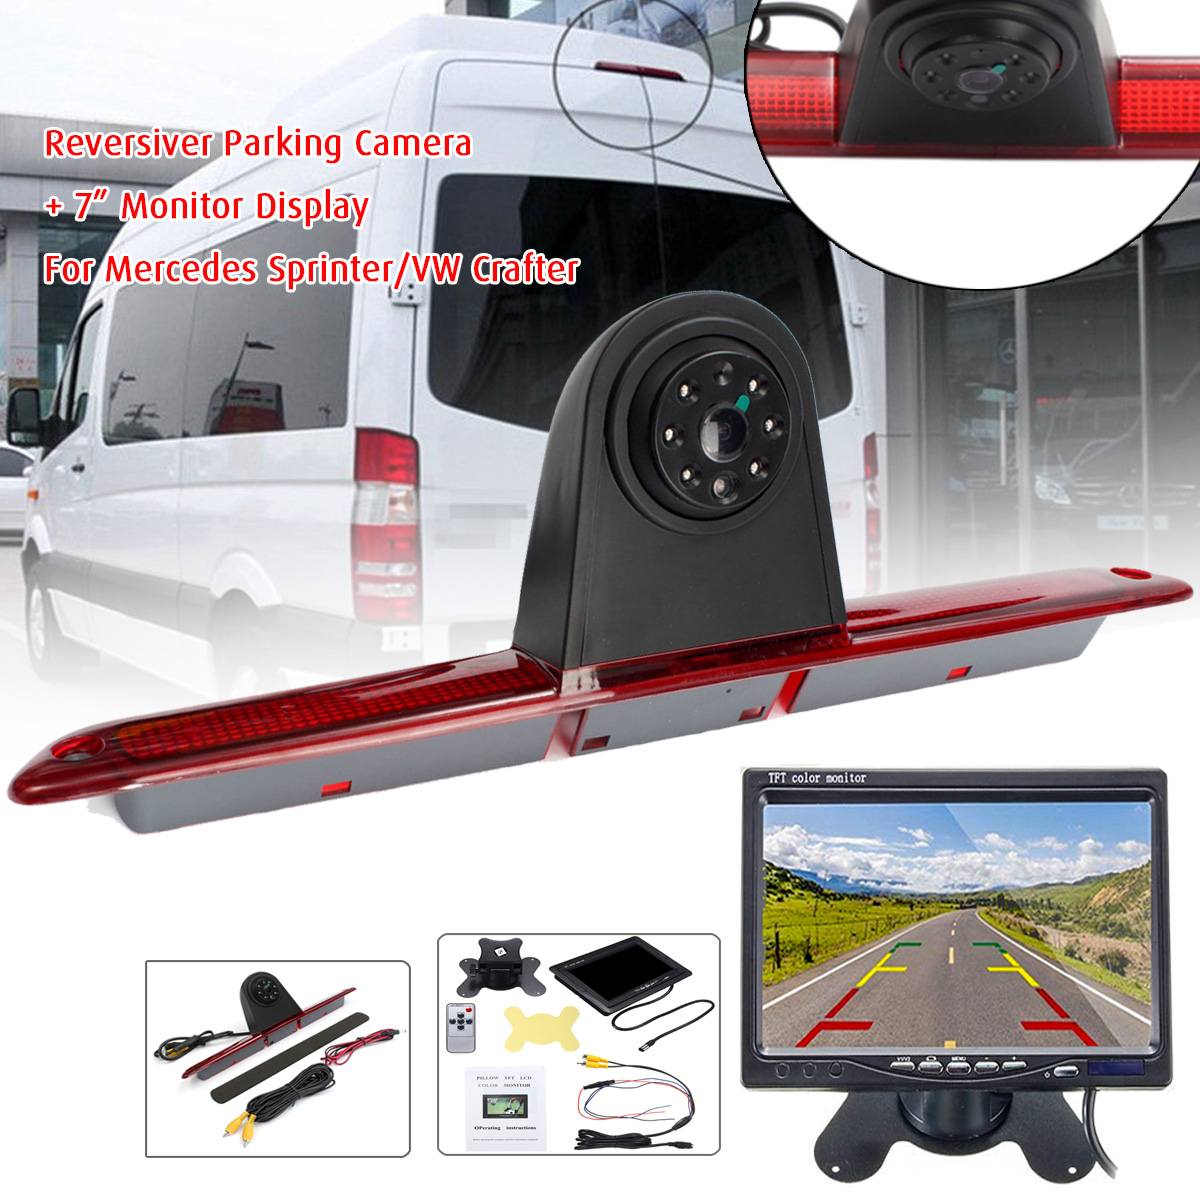 Car CCD Reversing Rear View Camera LED Brake Light Parking Night Vision Backup For Mercedes Benz Sprinter VW Crafter